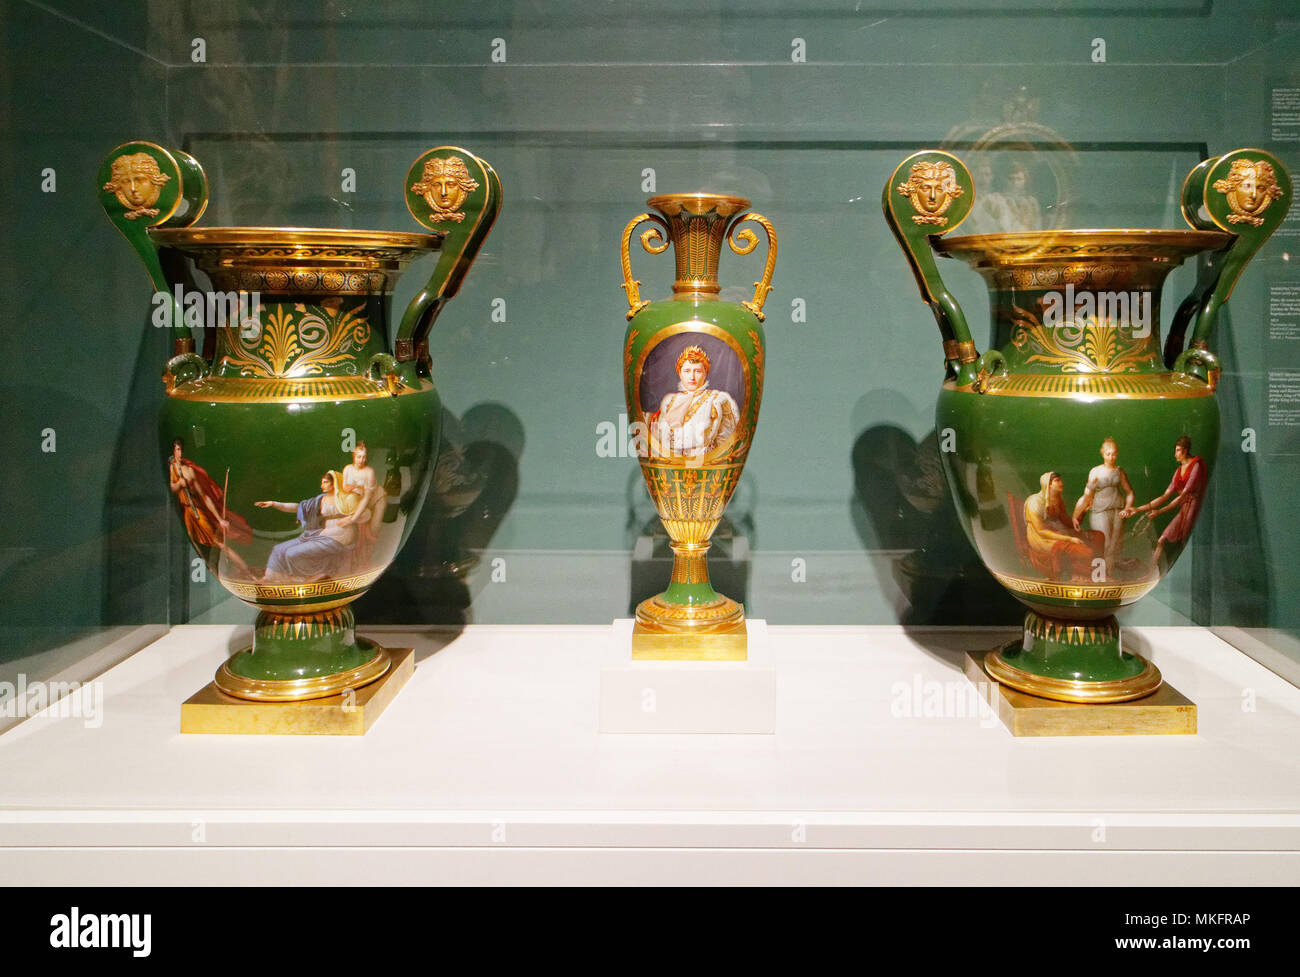 Napoleon's portrait painted on a Sèvres porcelain spindle vase and a pair of Etruscan scroll vases - Stock Image